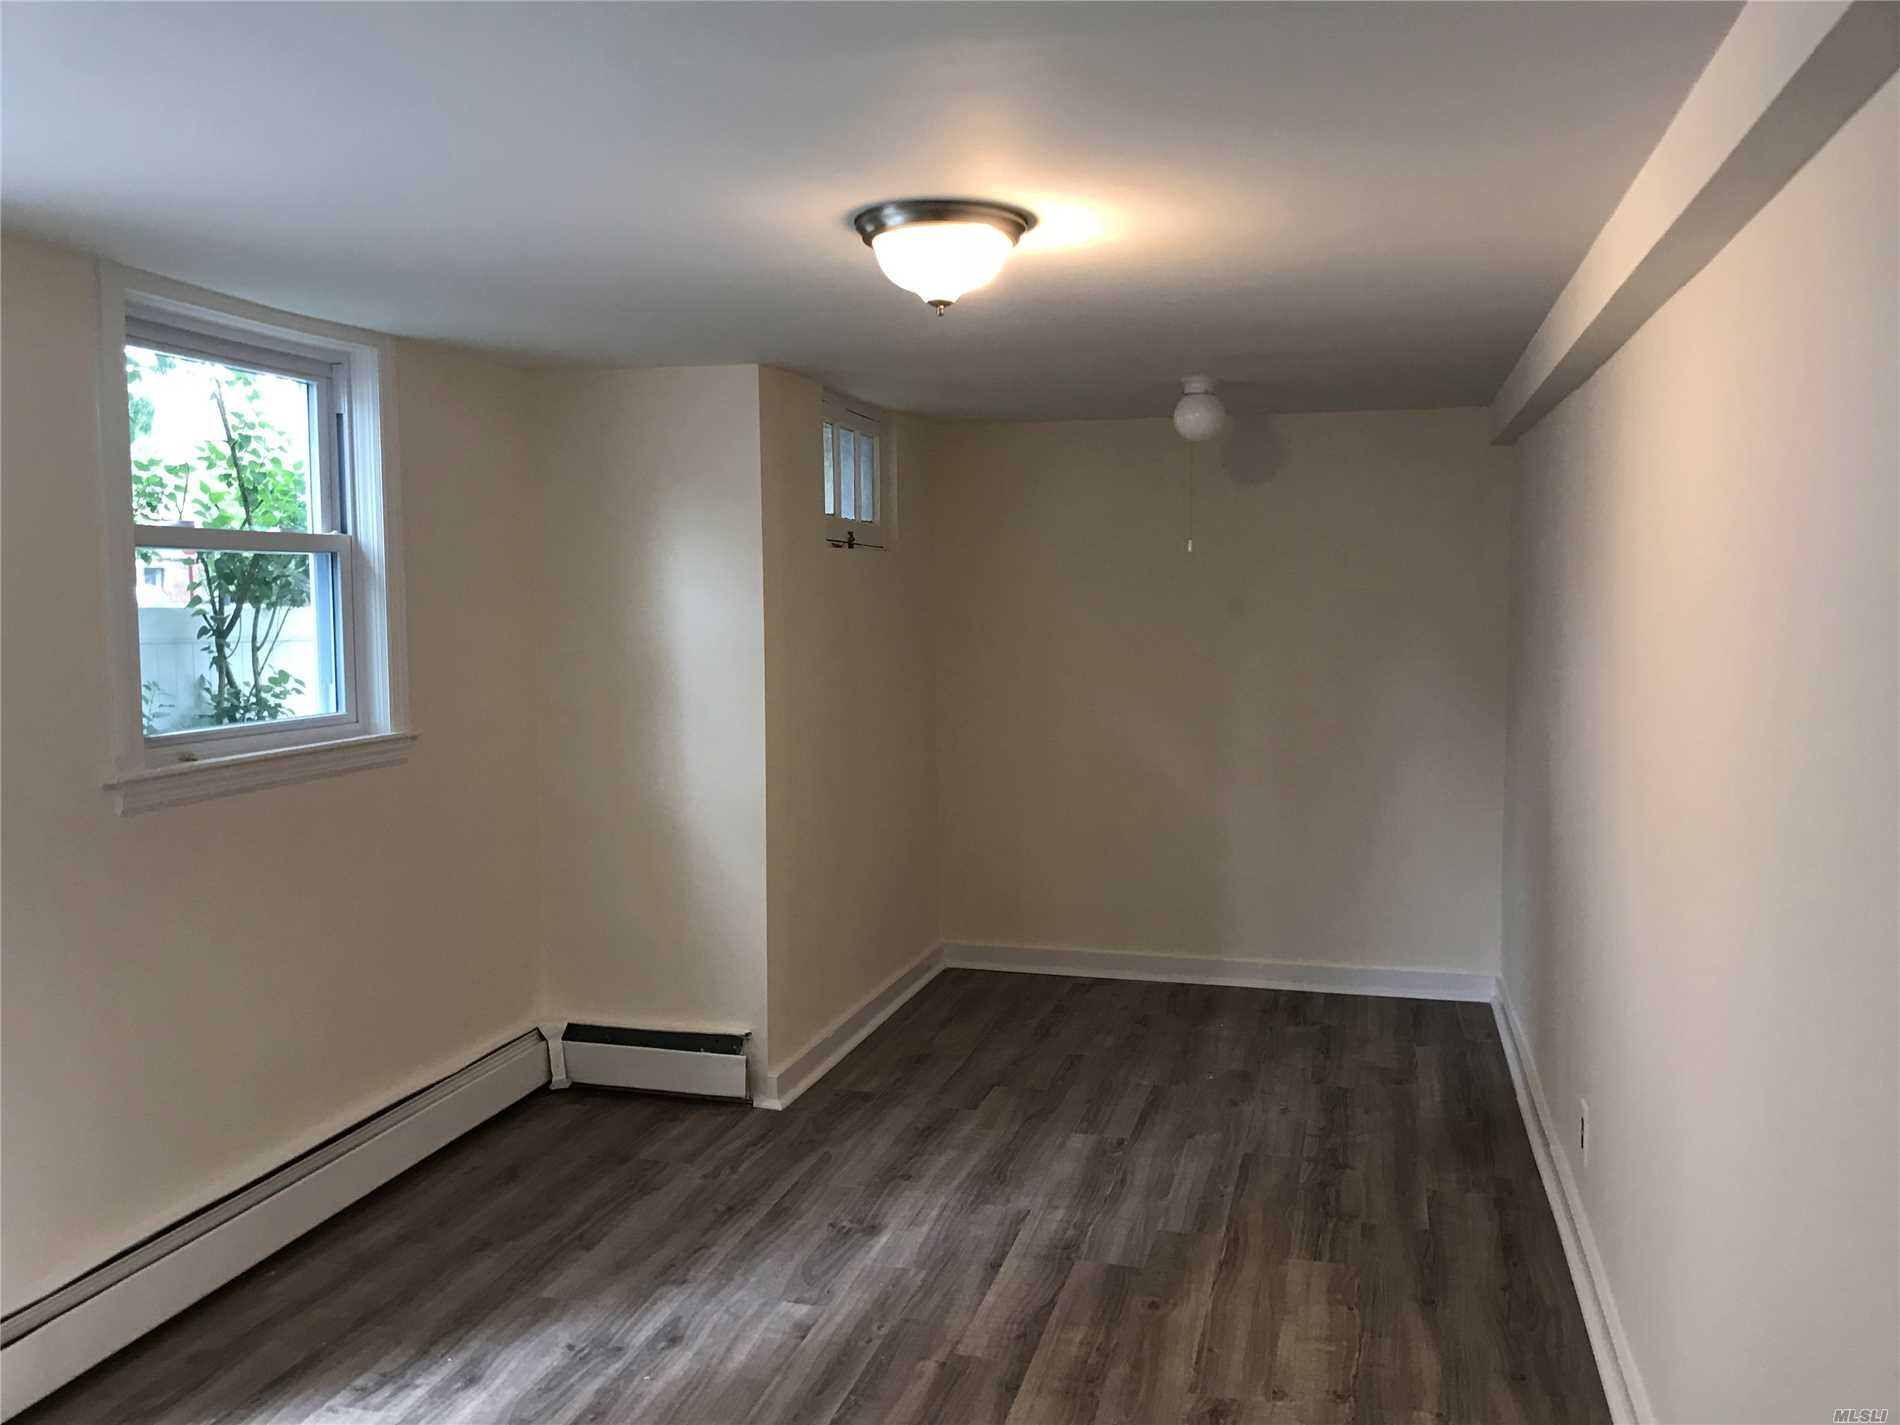 Fabulous First Floor Apartment That Has Been Fully Renovated. The Unity Features All New Appliances, New Flooring, Freshly Painted, Shared Use Of Yard, Off Street Parking And Convenient To All Shopping And Transportation.